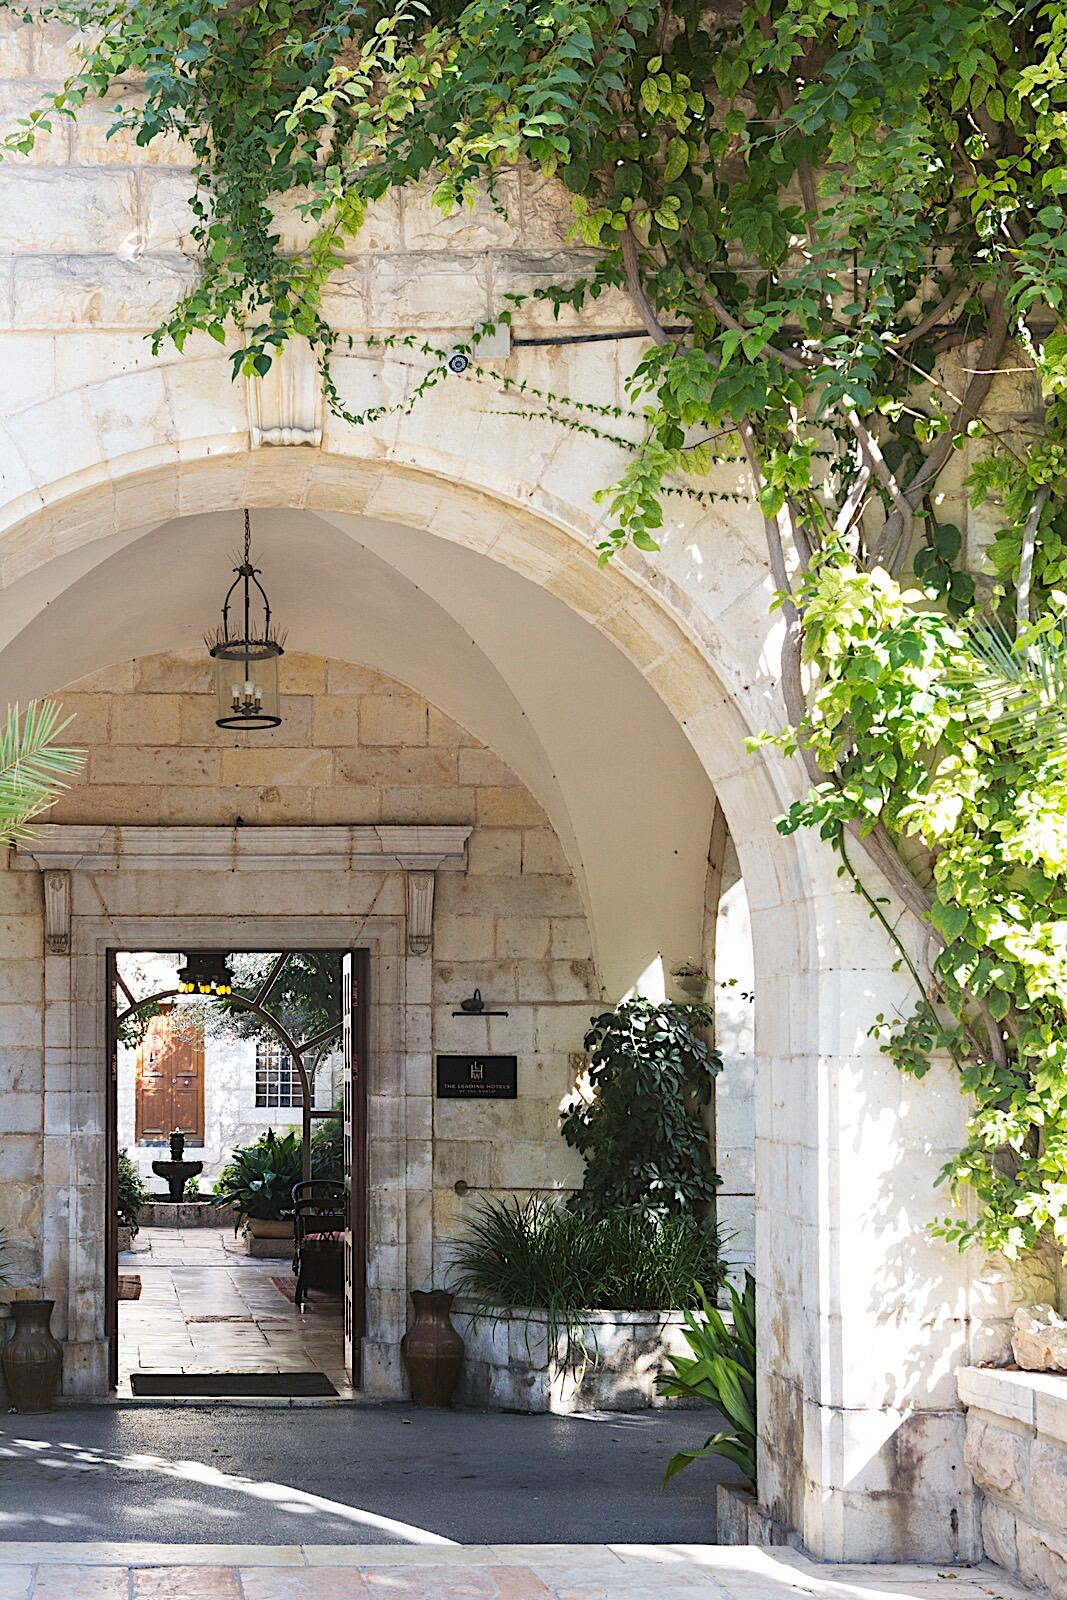 Entrance of The American Colony Hotel in Jerusalem